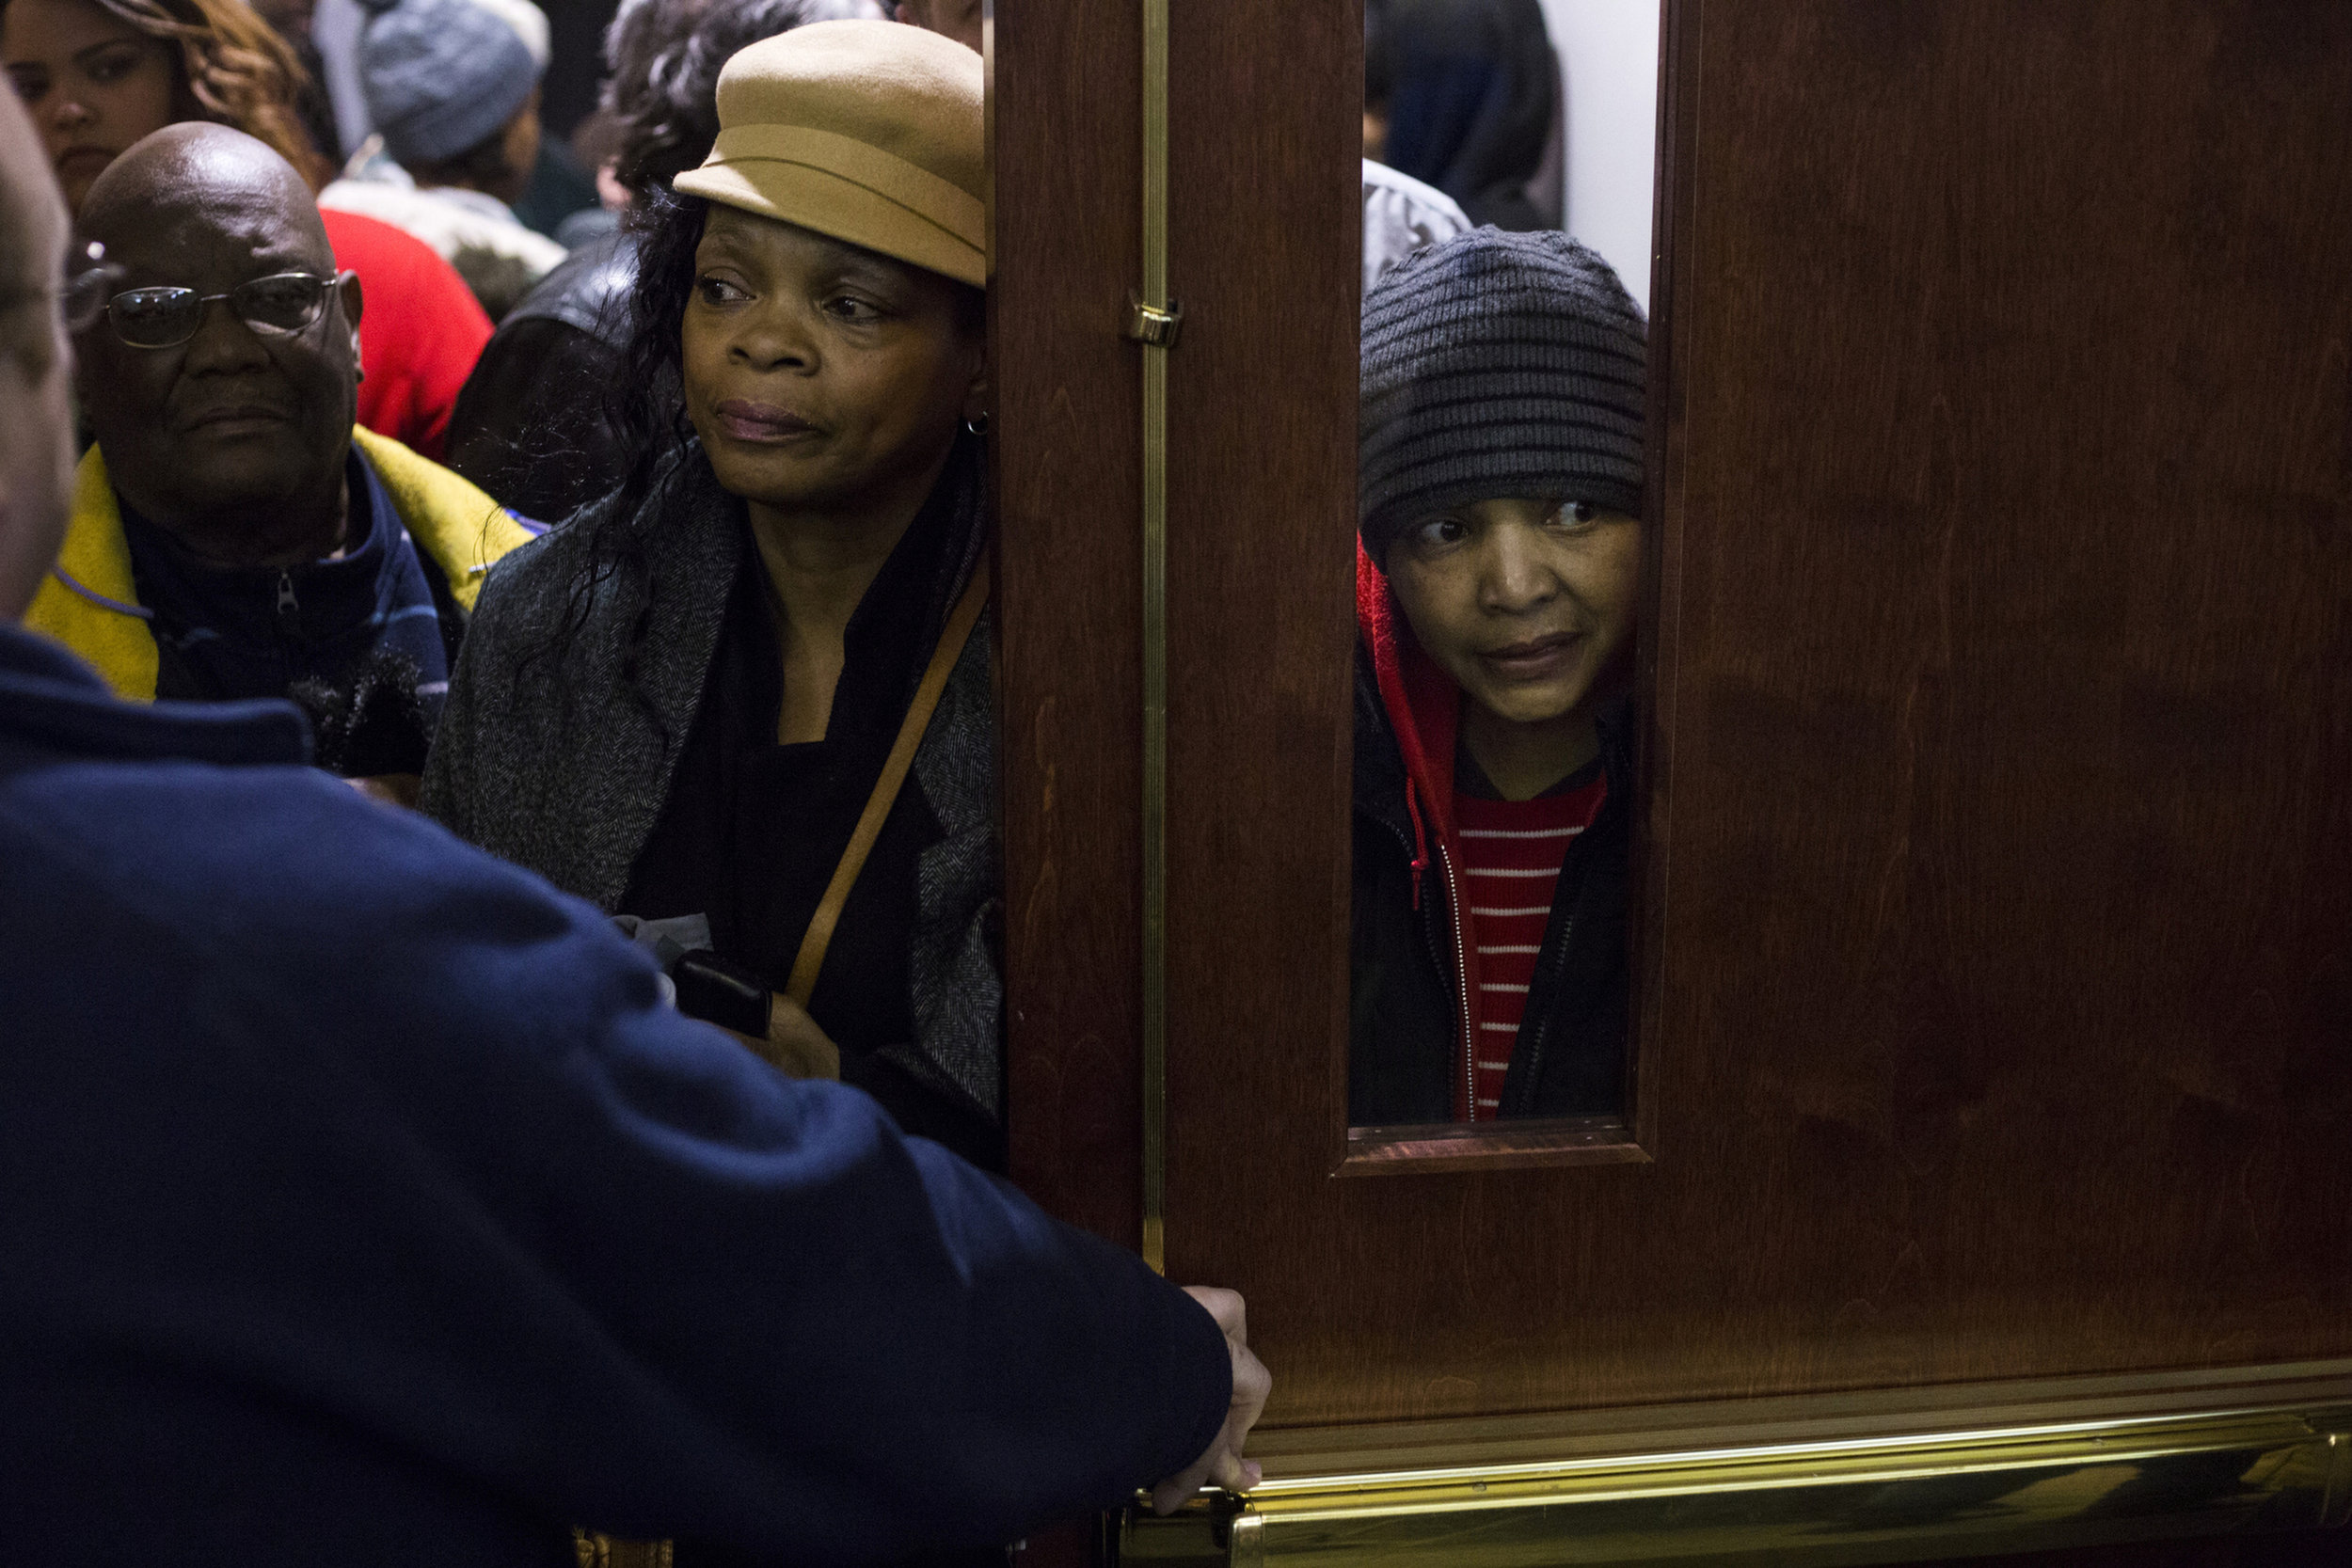 Shirley Williams, 55, of Flint, Mich., peers from a window as she and other residents are held in a nearby hallway during an informational meeting regarding personal injury lawsuits held at the Northbank Center in downtown Flint. The room, which fit nearly 400 people was over capacity within minutes.